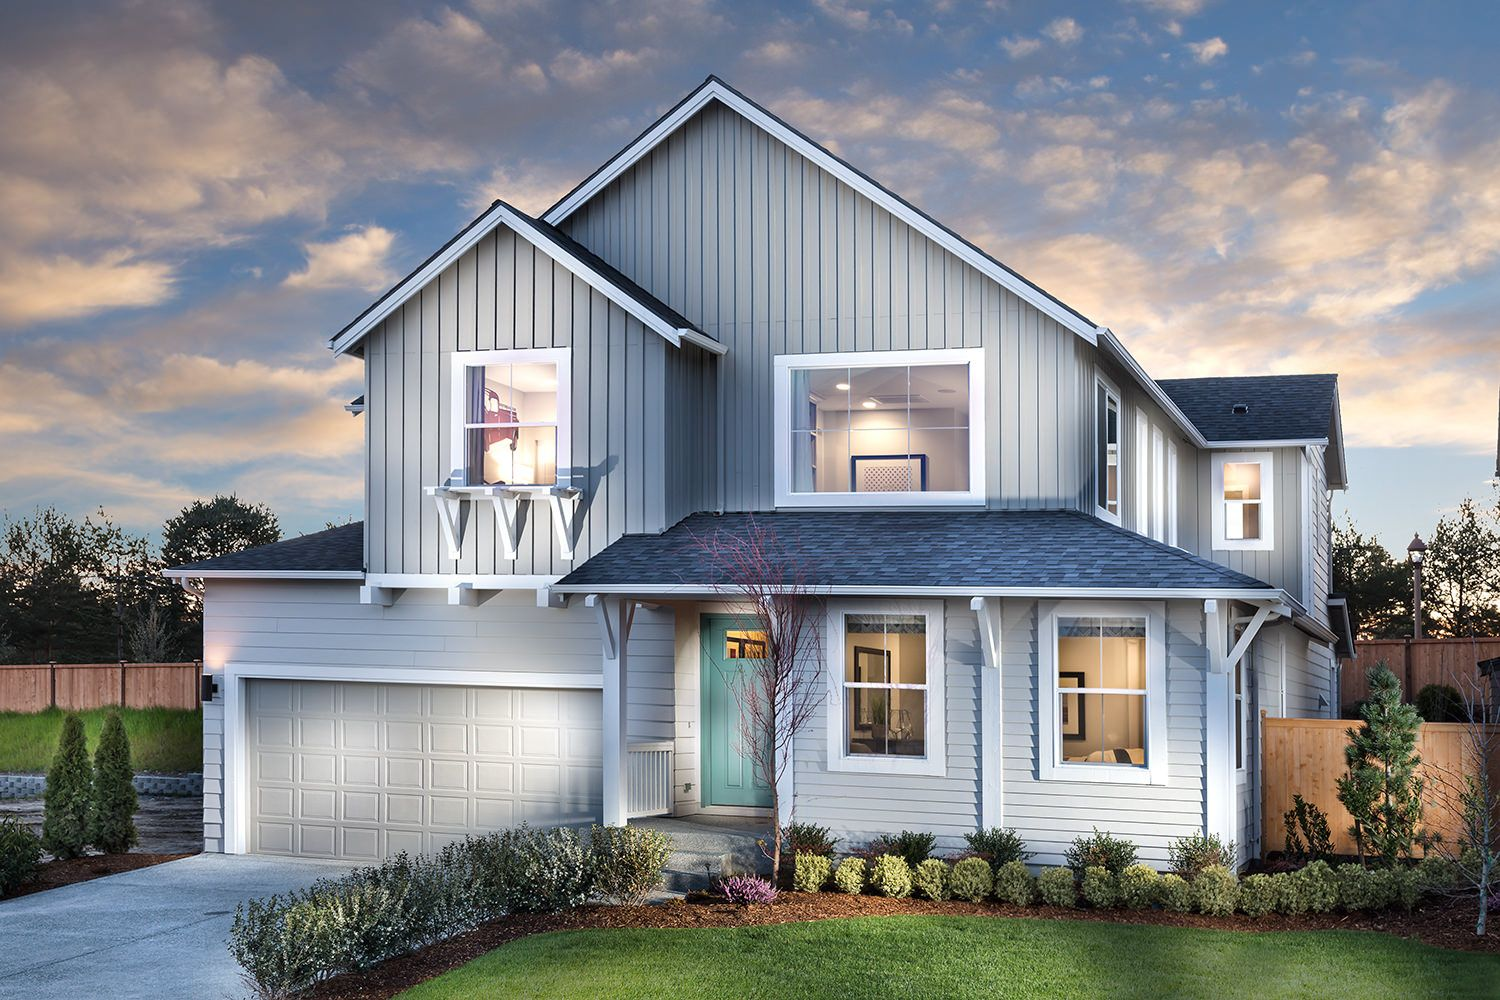 Single Family for Sale at Mountain Aire - Residence M-300 18758 Ne Colwood Ave Poulsbo, Washington 98370 United States